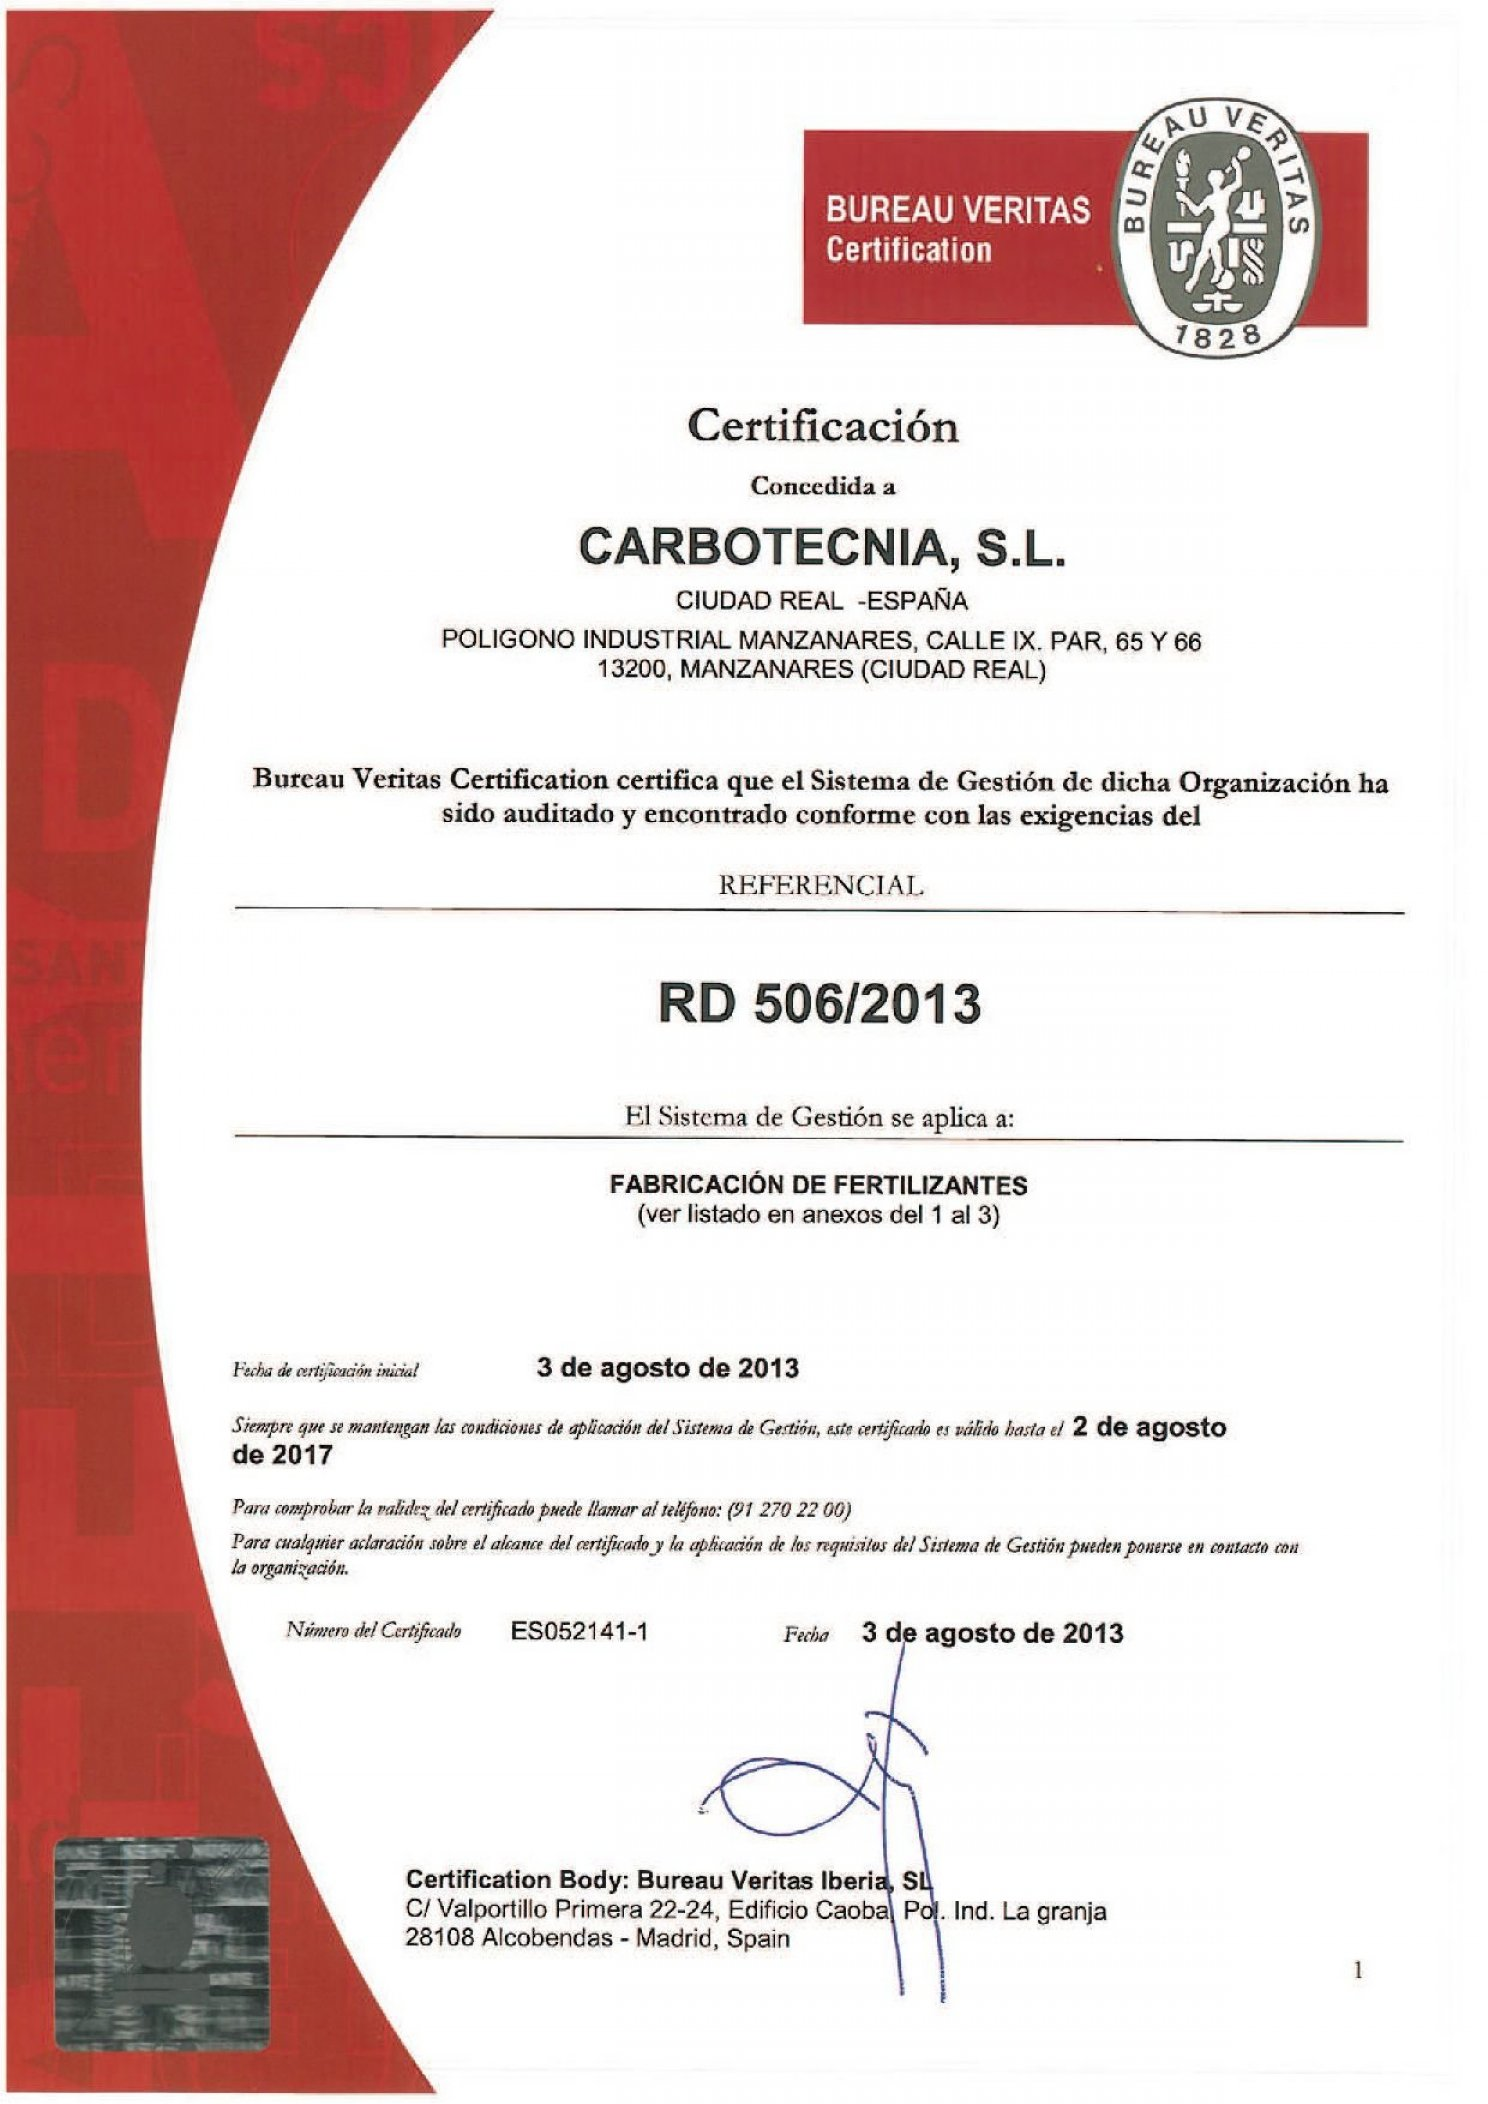 RD 506/2013 Certification